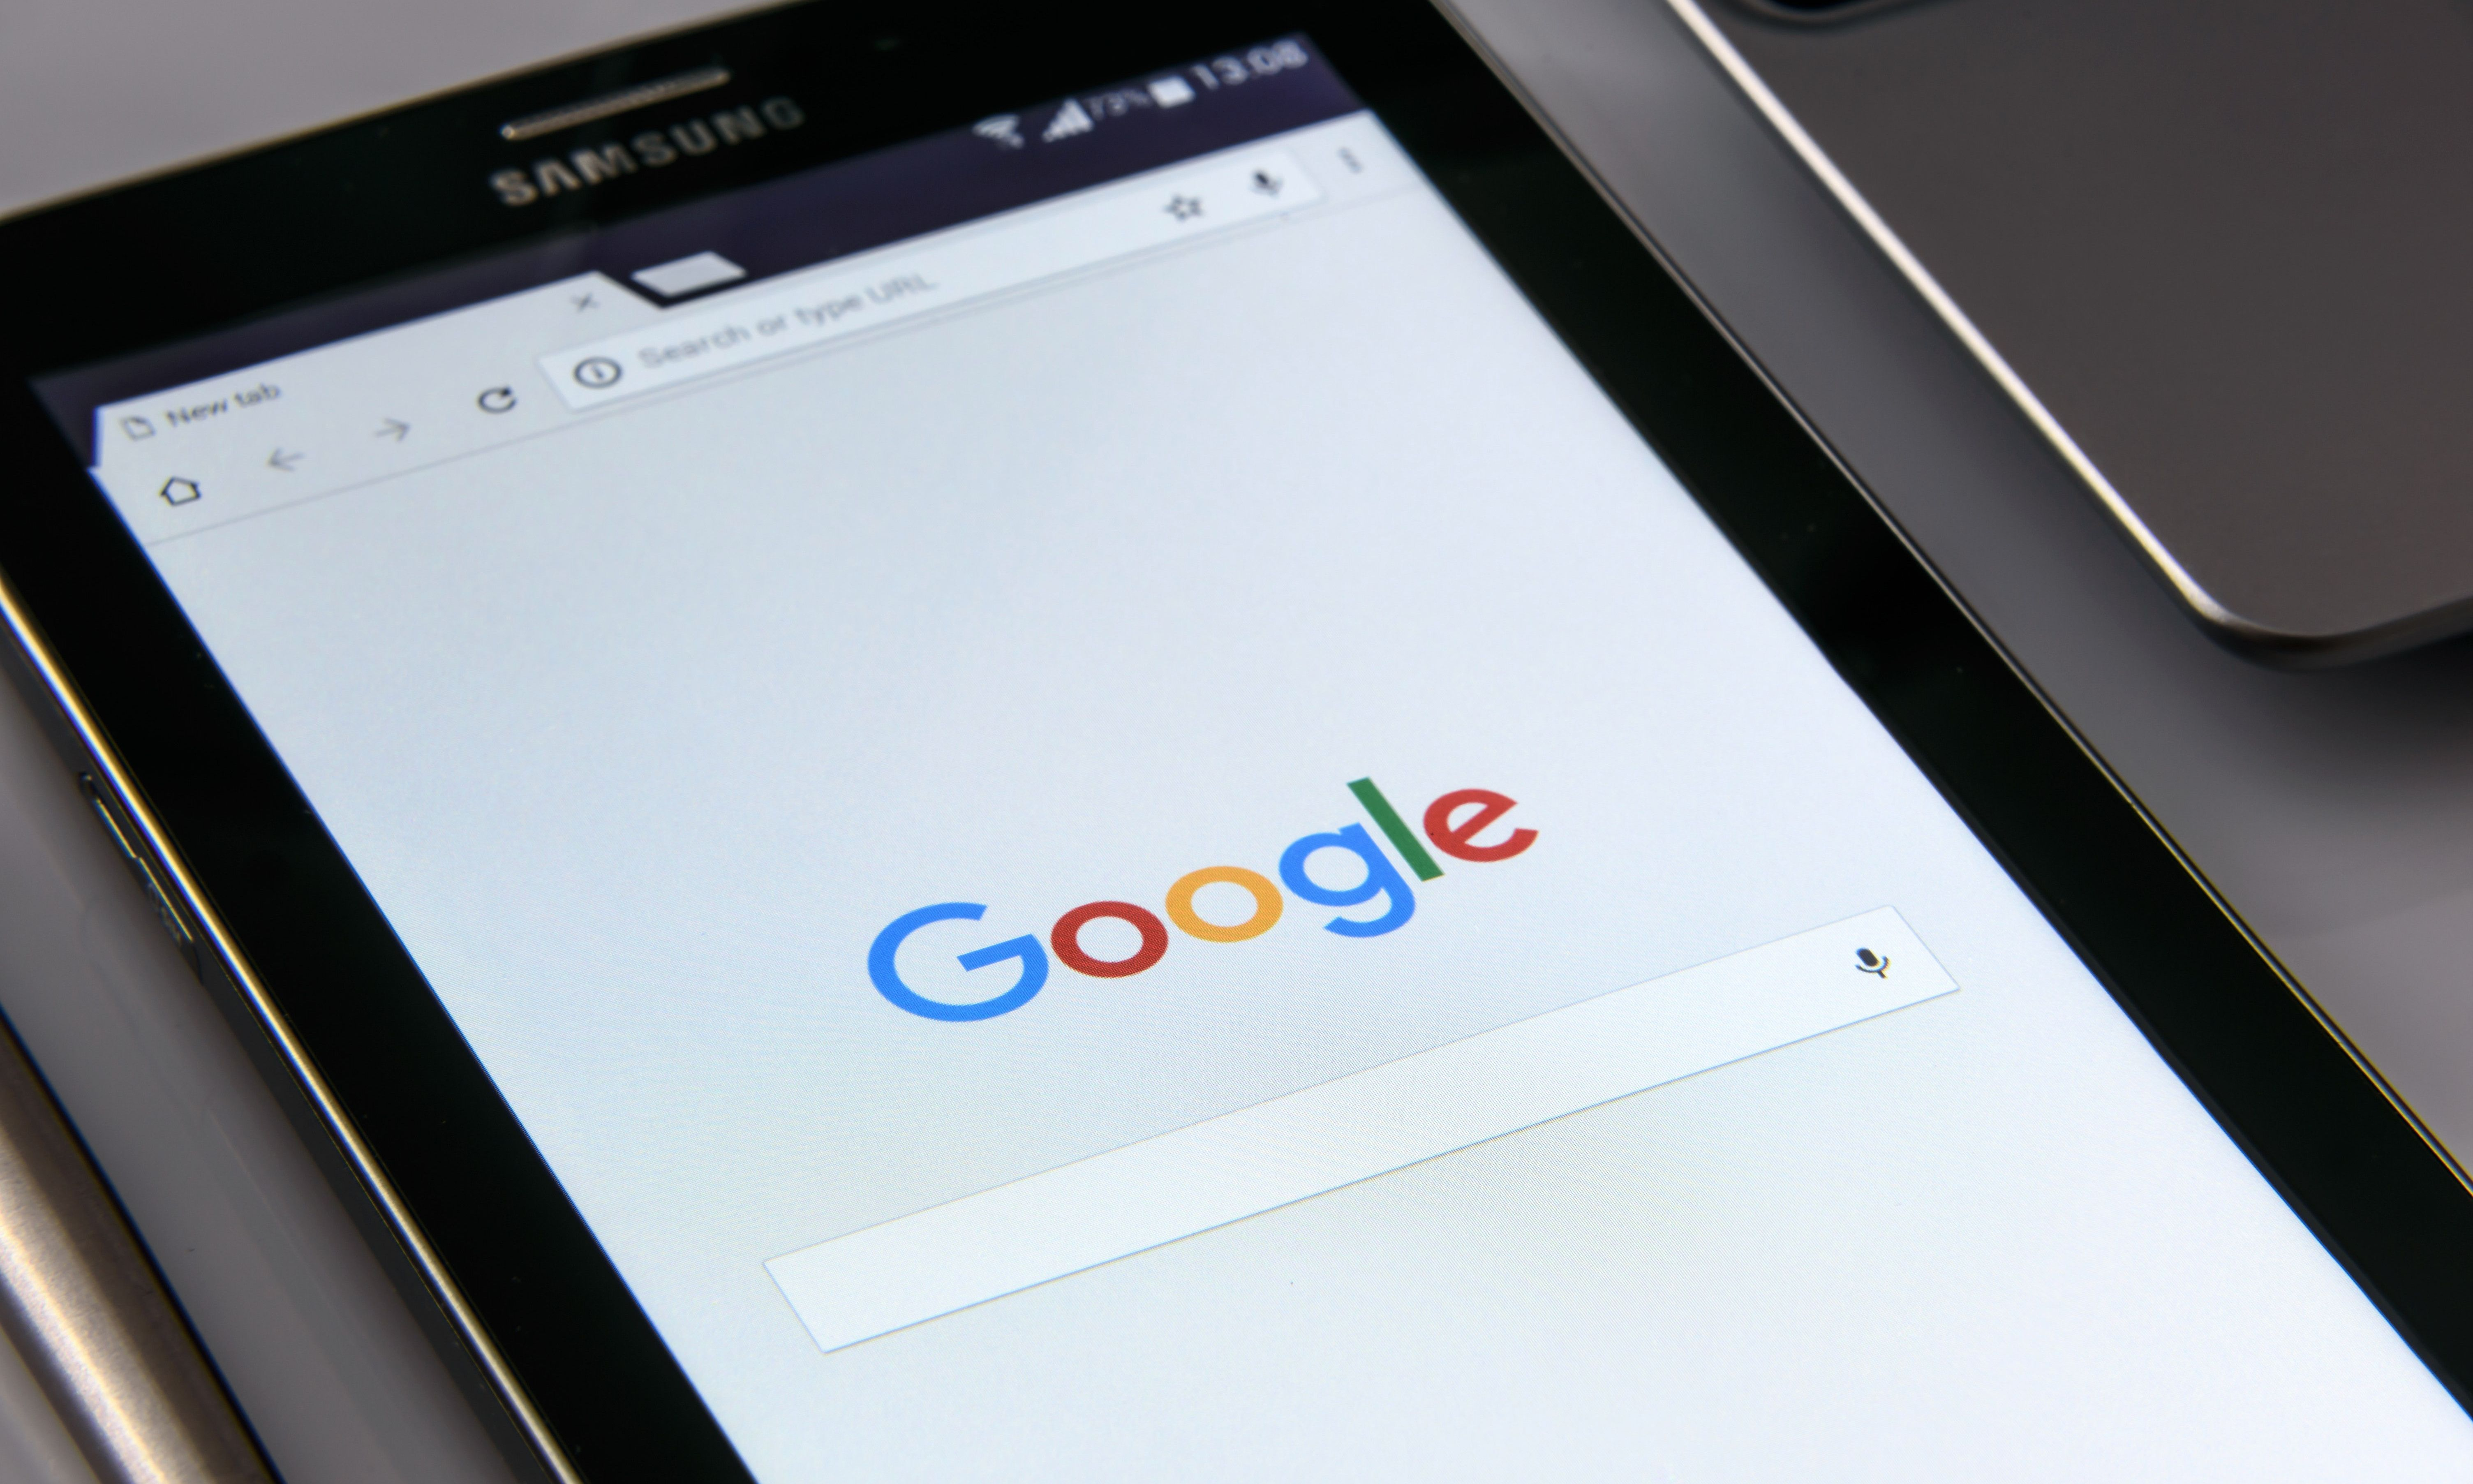 SEO: What It Is, What It Does, and How You Can Use It